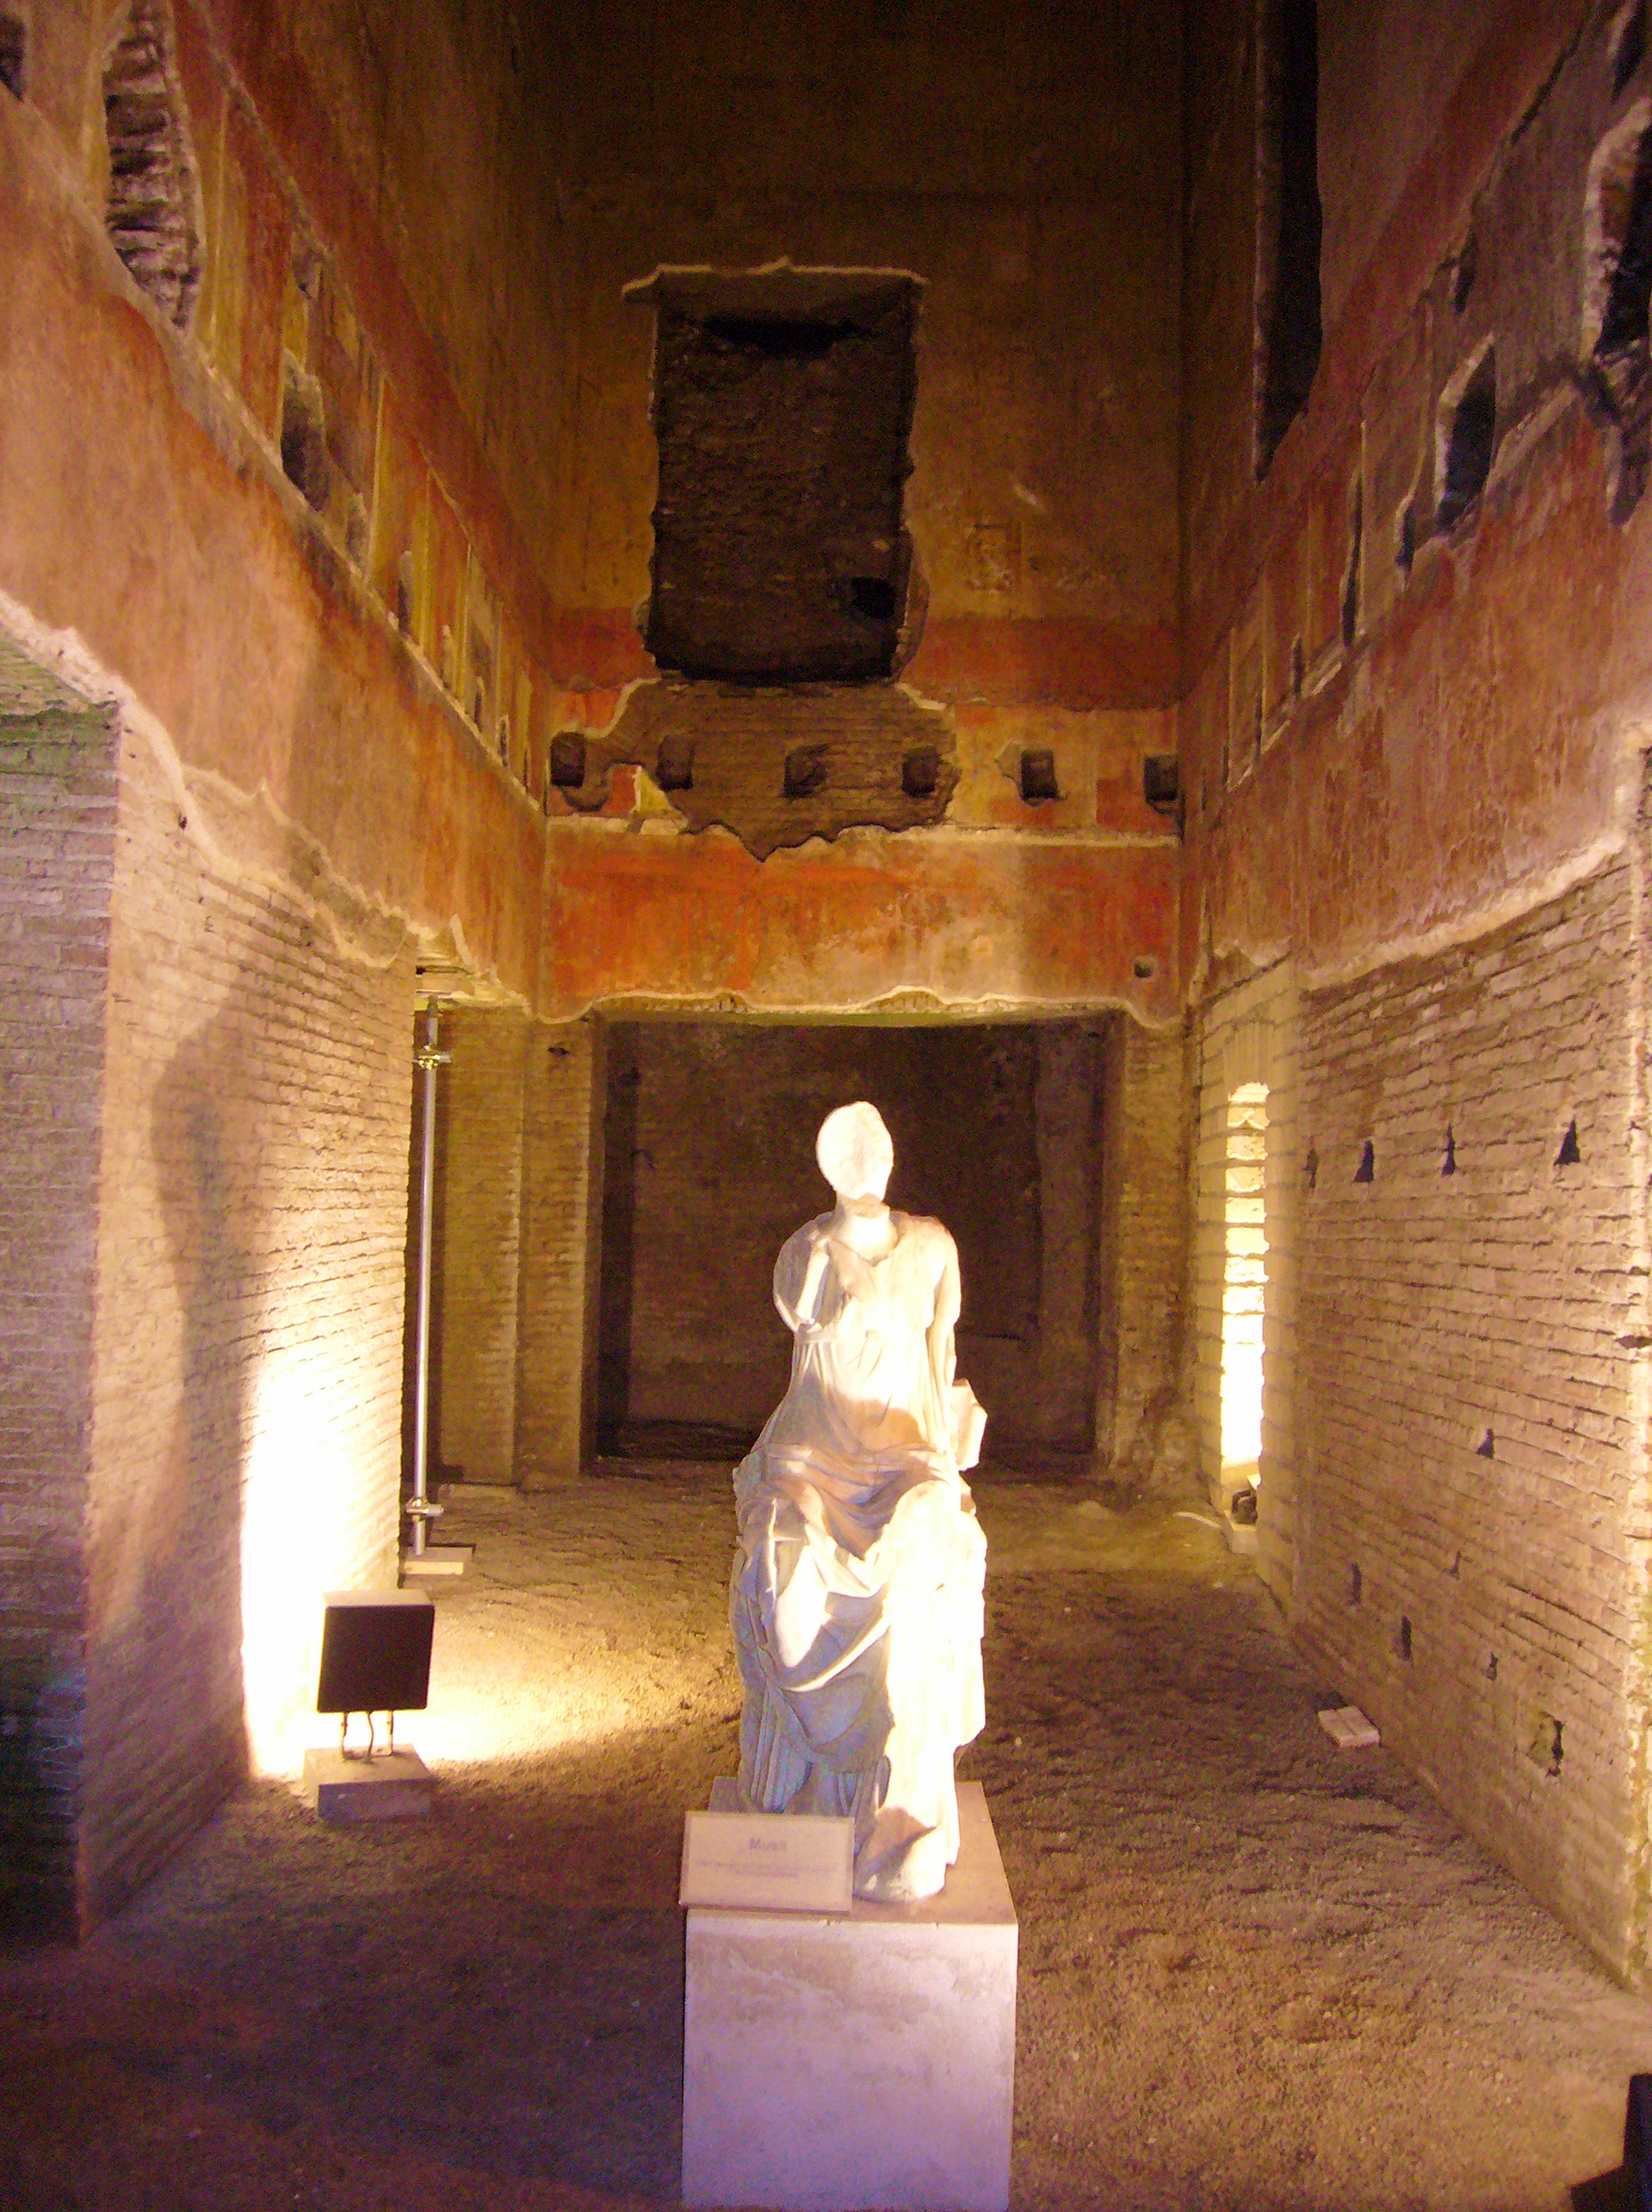 A room in the Domus Aurea as it looked in 2007